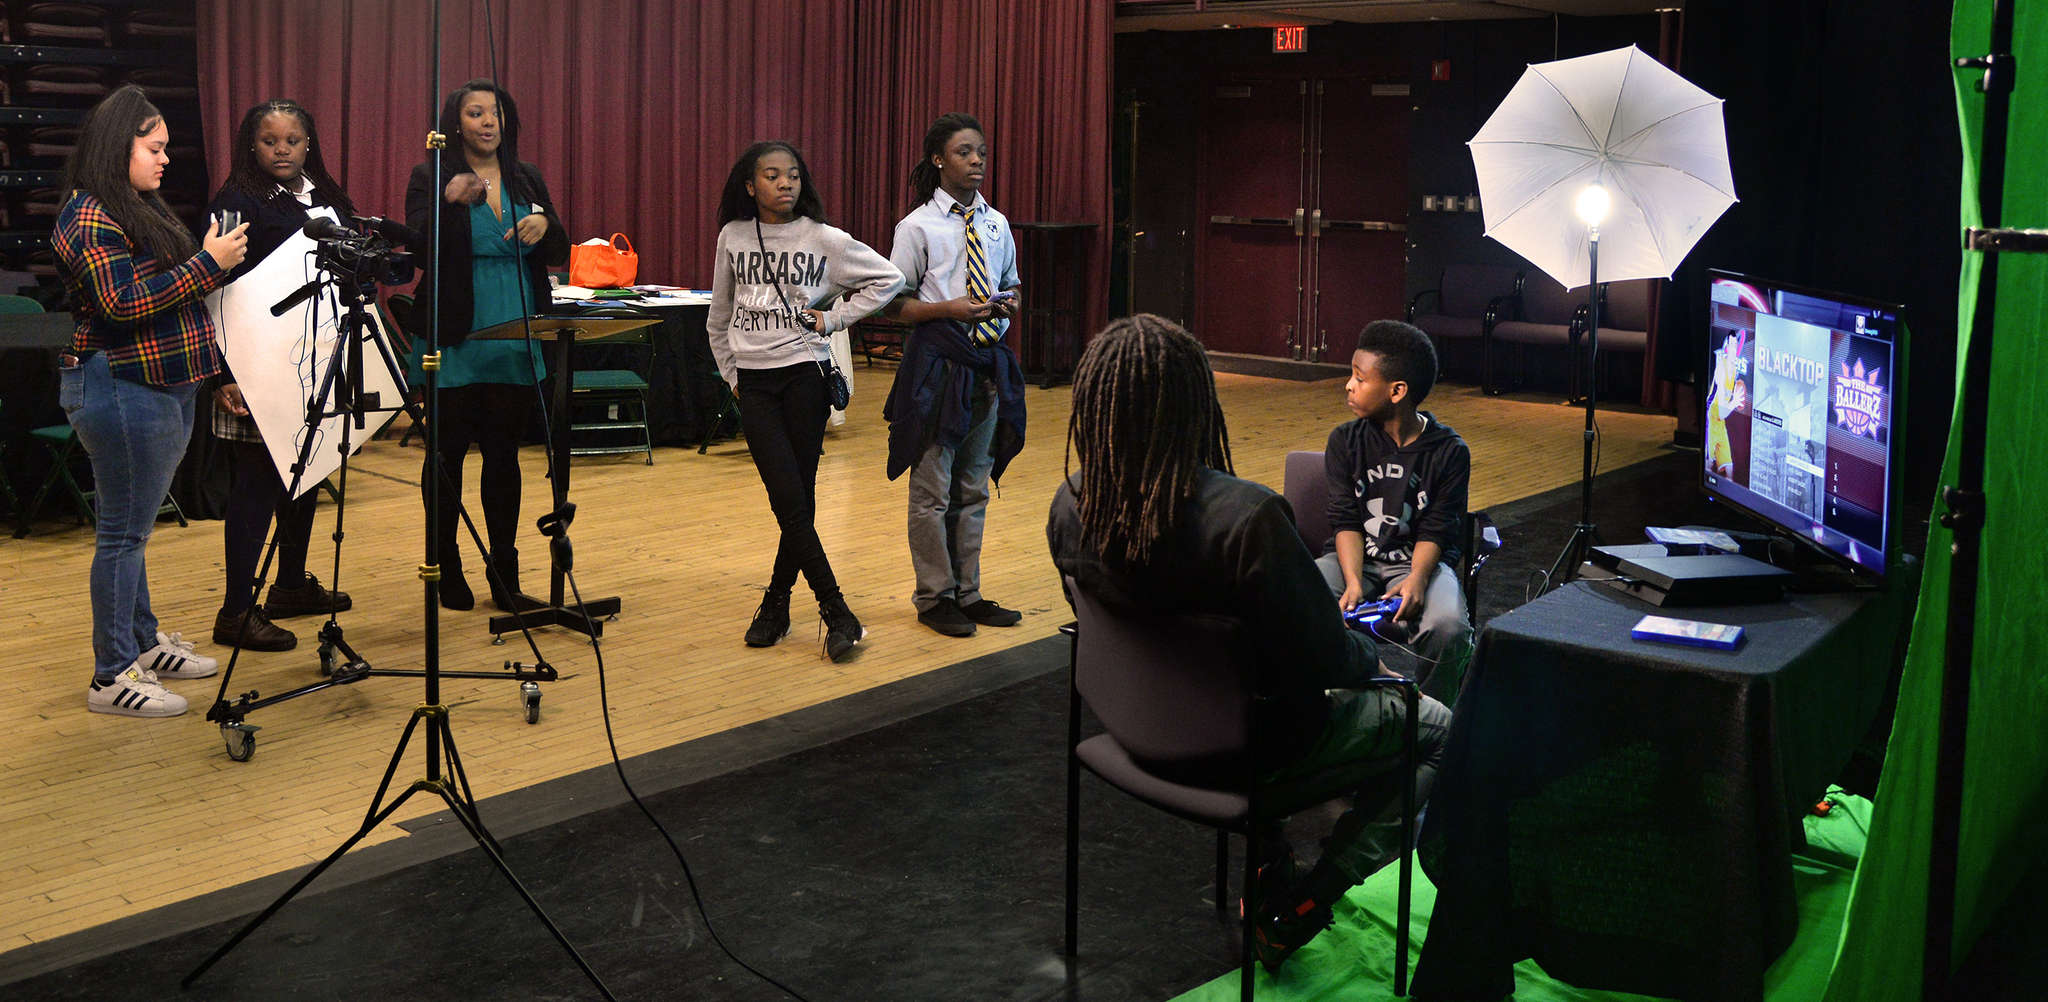 Recording a news segment at the school (from left): Naiyarie Sandoval, 14; Elisabeth Martin, 15; teacher Christina Collins; Jabriah Anderson, 13; and Niger Ali, 14, joined by Bryce Pellot, 10 (right).